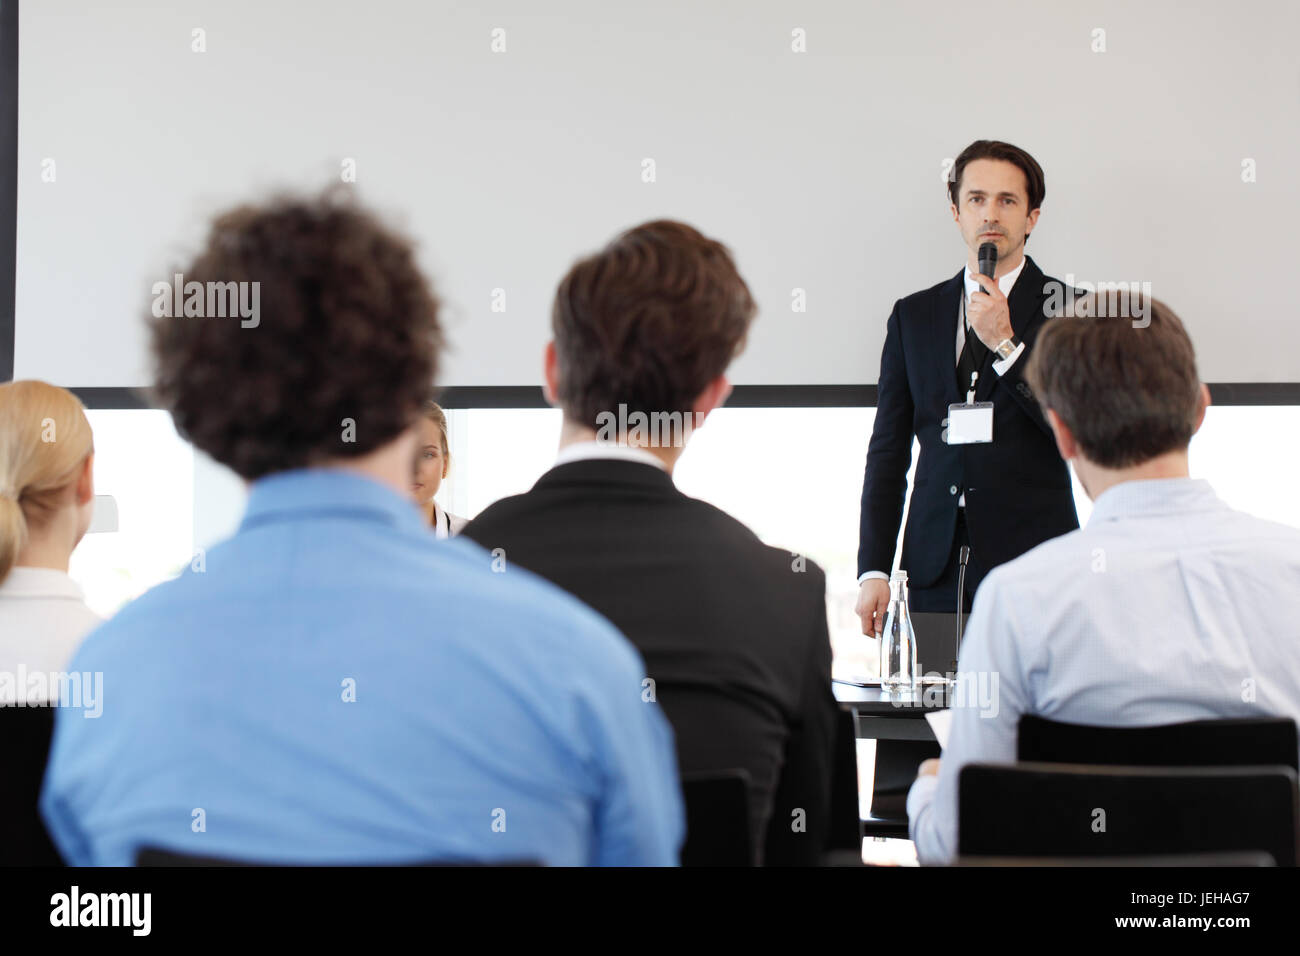 Speaker at business conference near white screen and audience - Stock Image